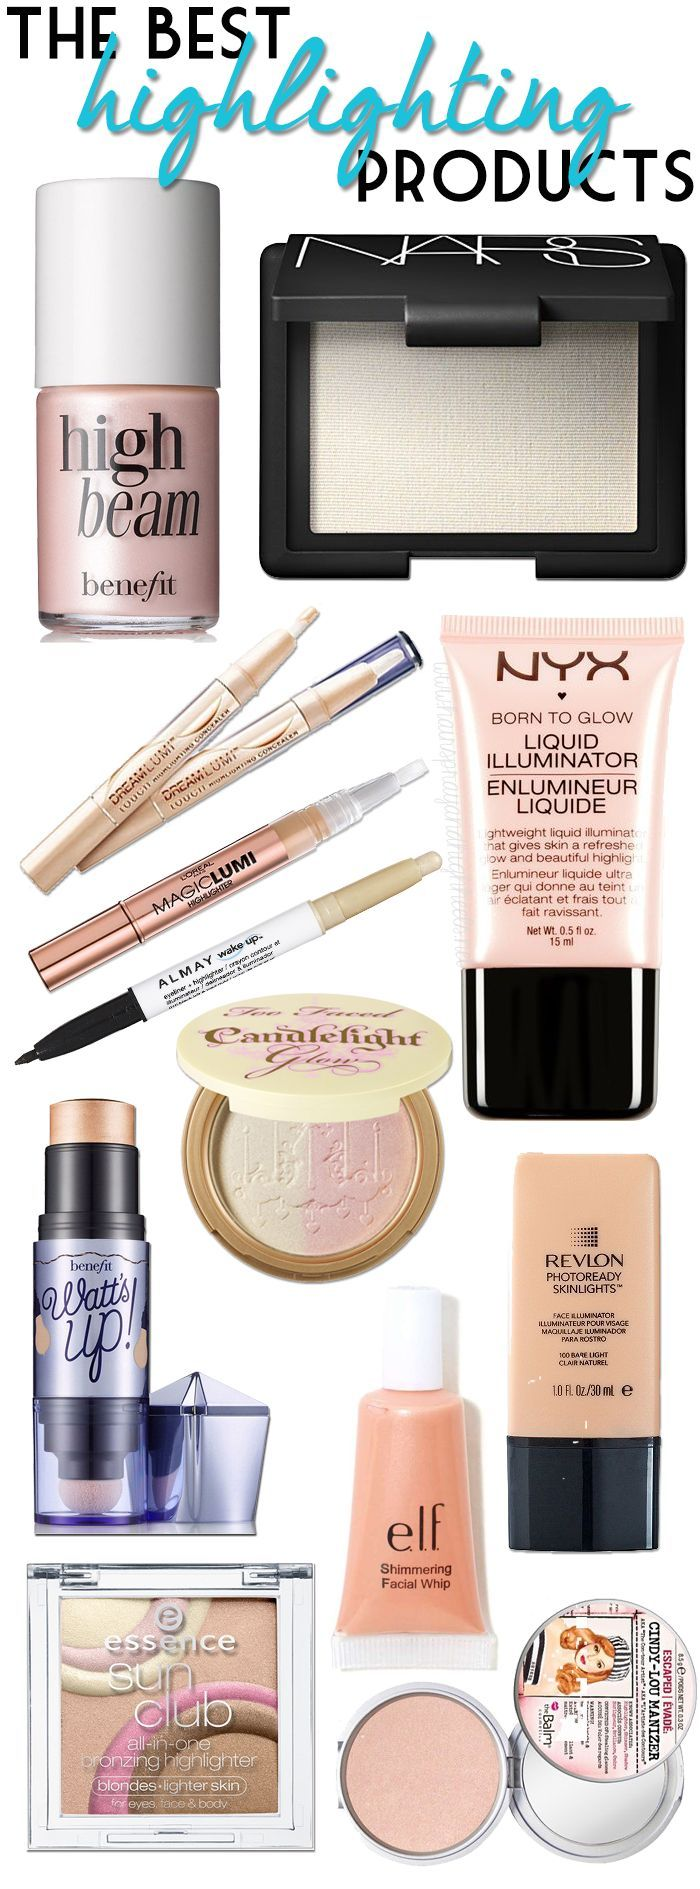 The Best Highlighting Products